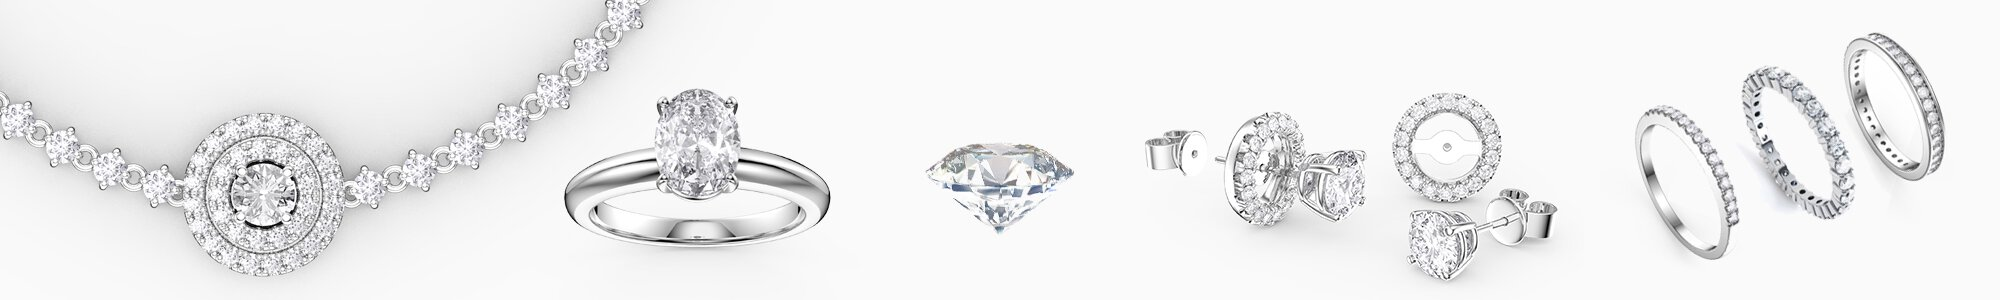 Diamond Jewelry - from Earrings studs and drops to Pendants to Engagement Rings to Bracelets